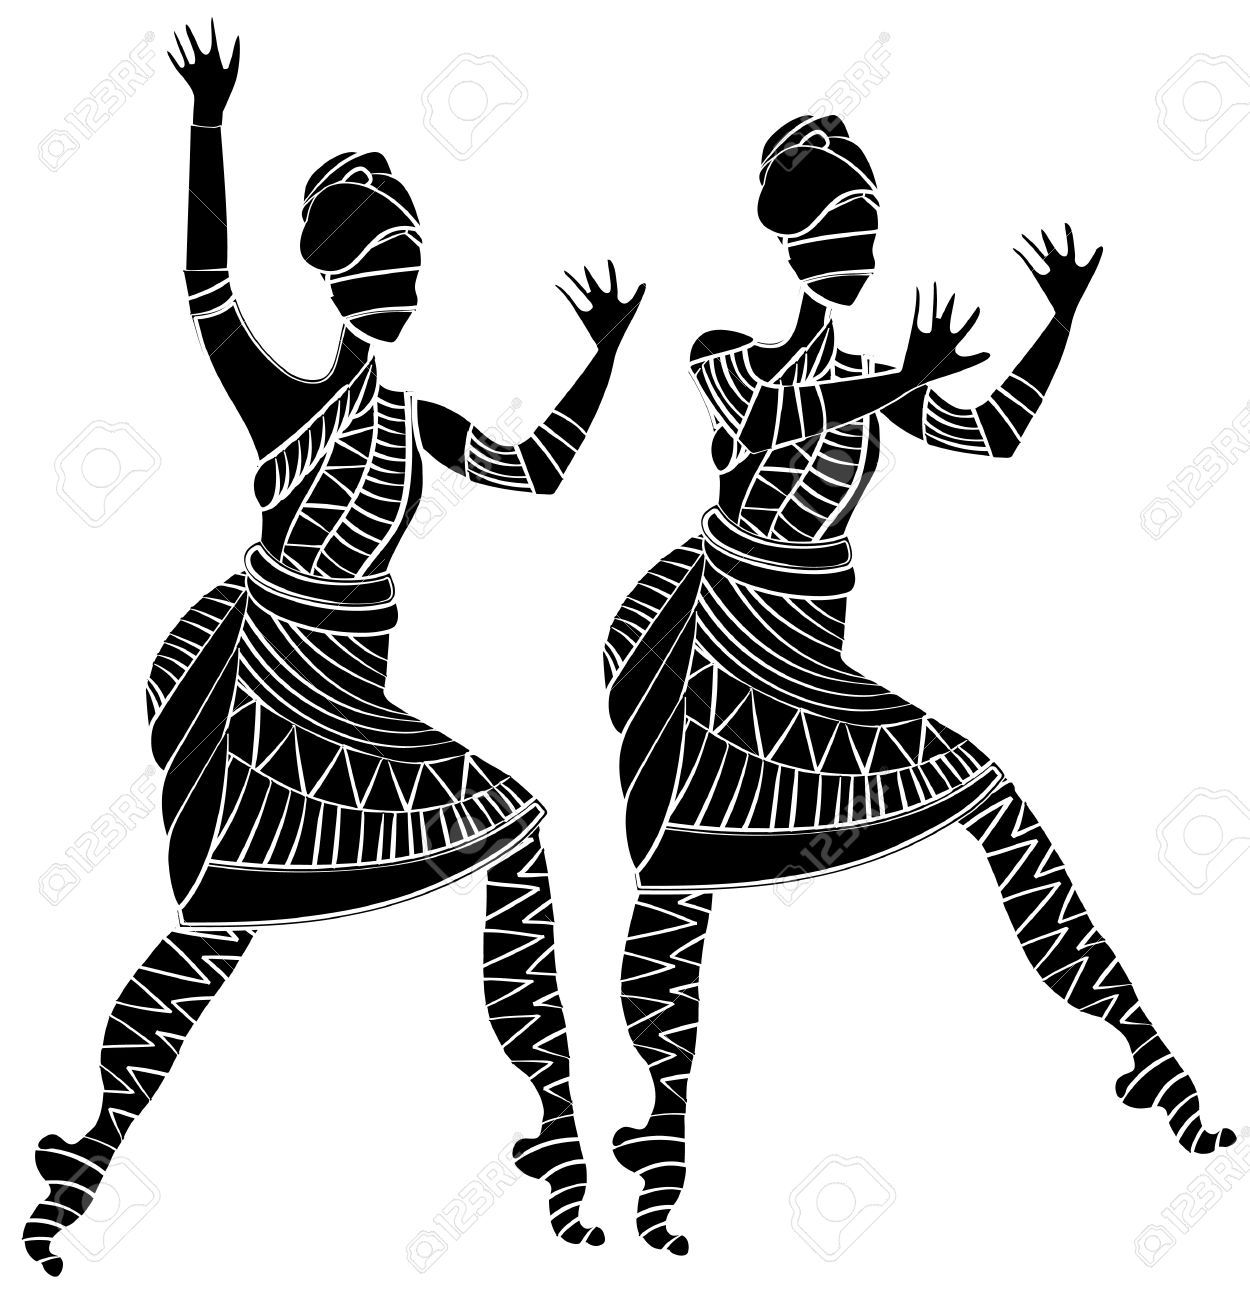 African clipart dancer african. Religion cliparts stock vector